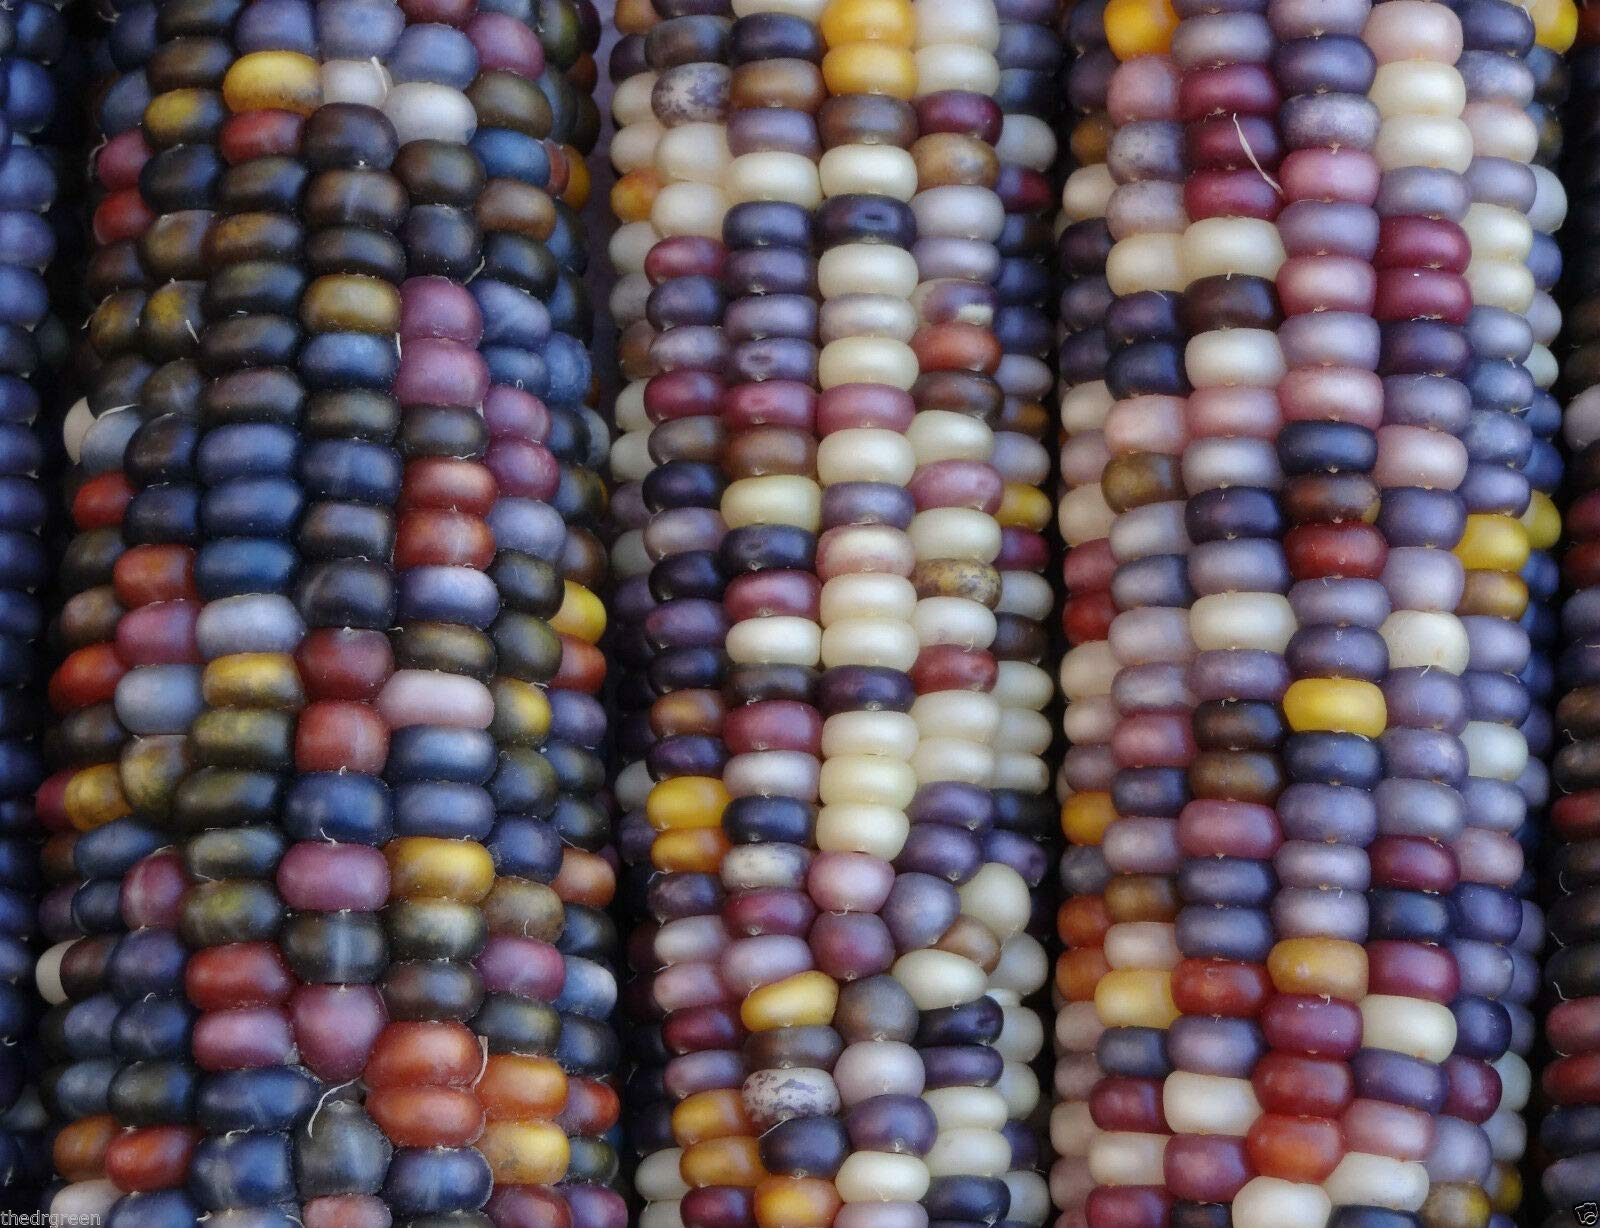 Glass Gem Heirloom Indian Corn Non-GMO Native Cherokee Zea mays Maize(Premium Quality) by The DG Premium